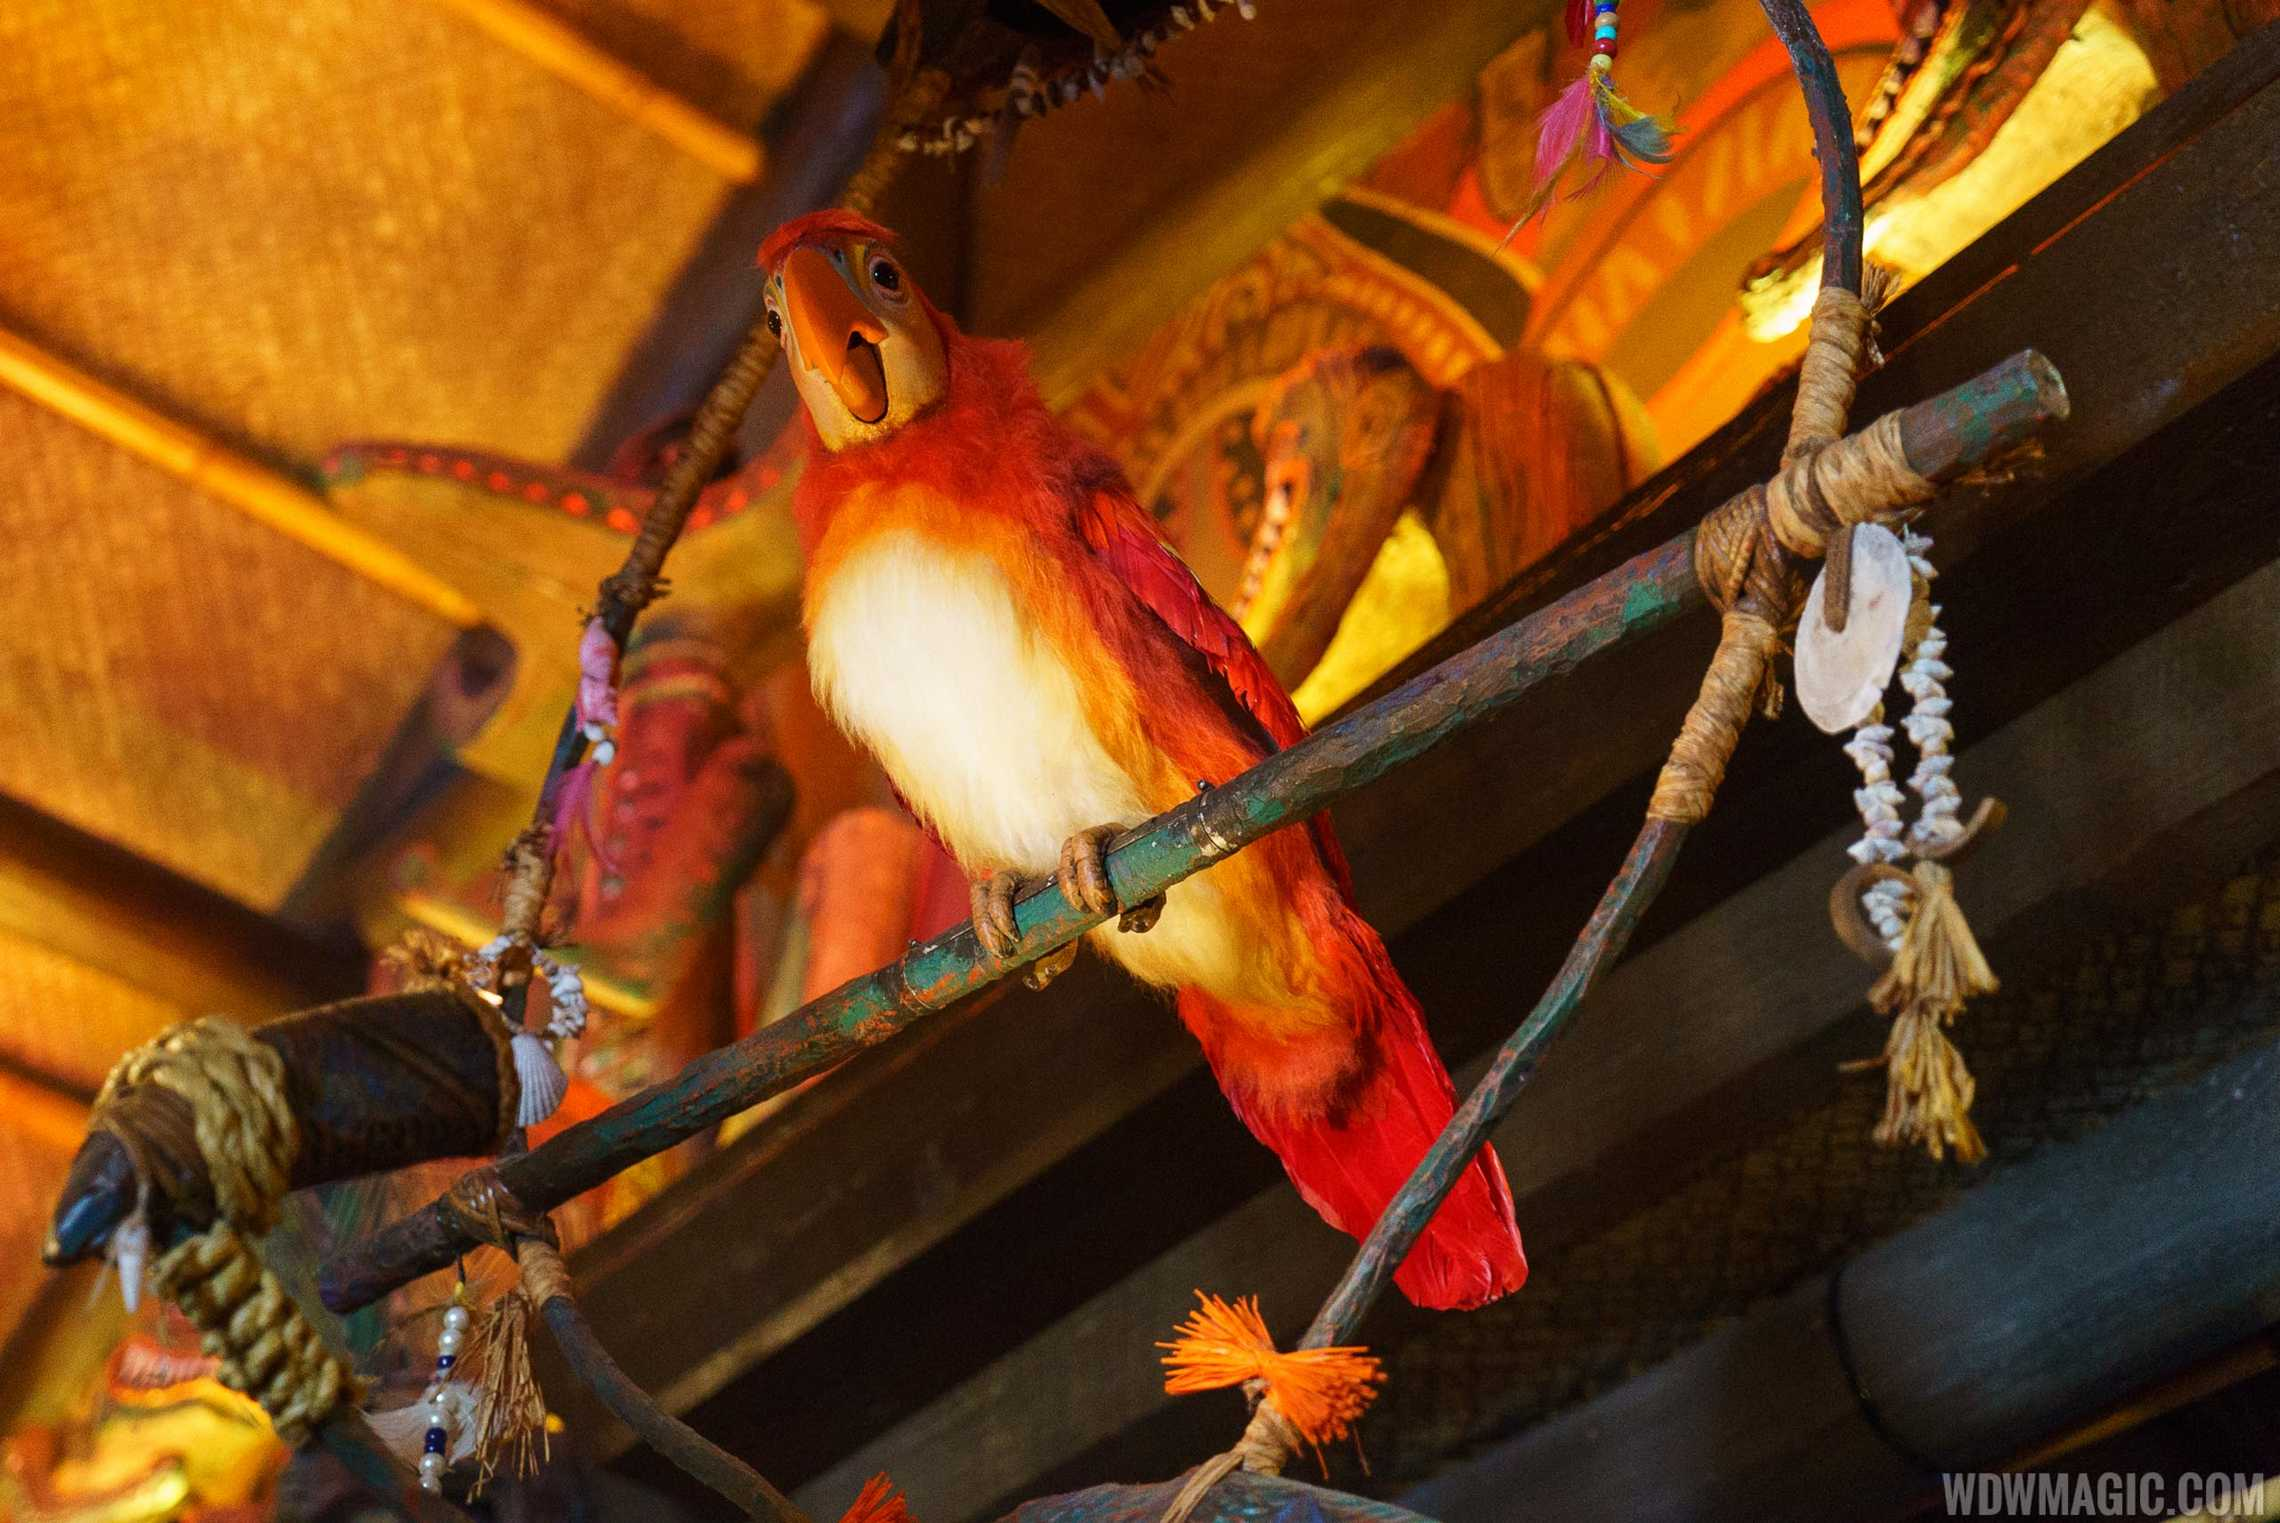 Tiki Room Audio-Animatronic figure